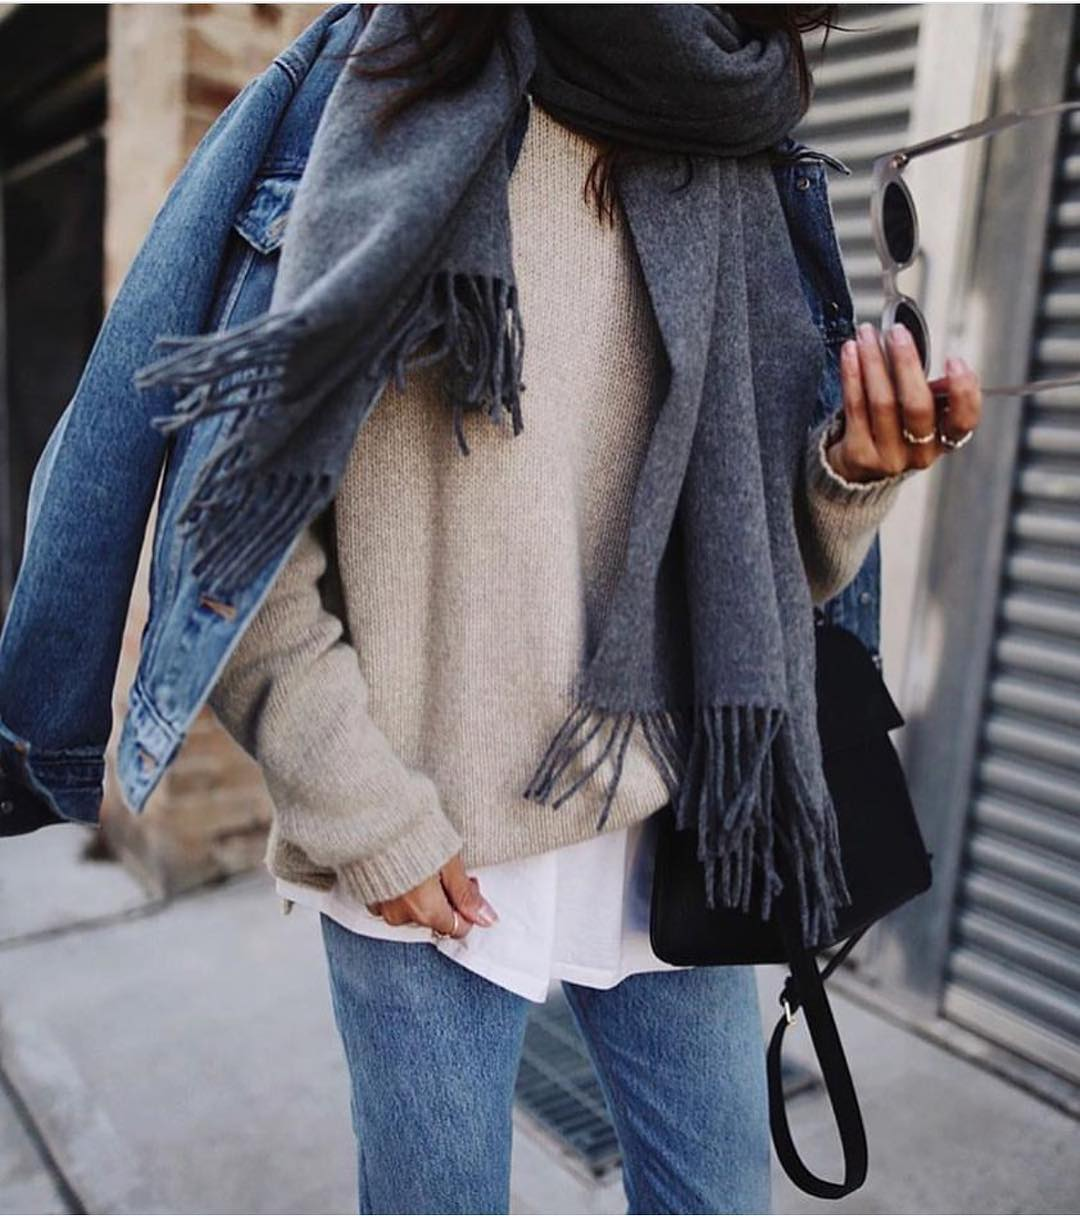 Layered OOTD For Fall: Denim Jacket, Sweater And Scarf 2021